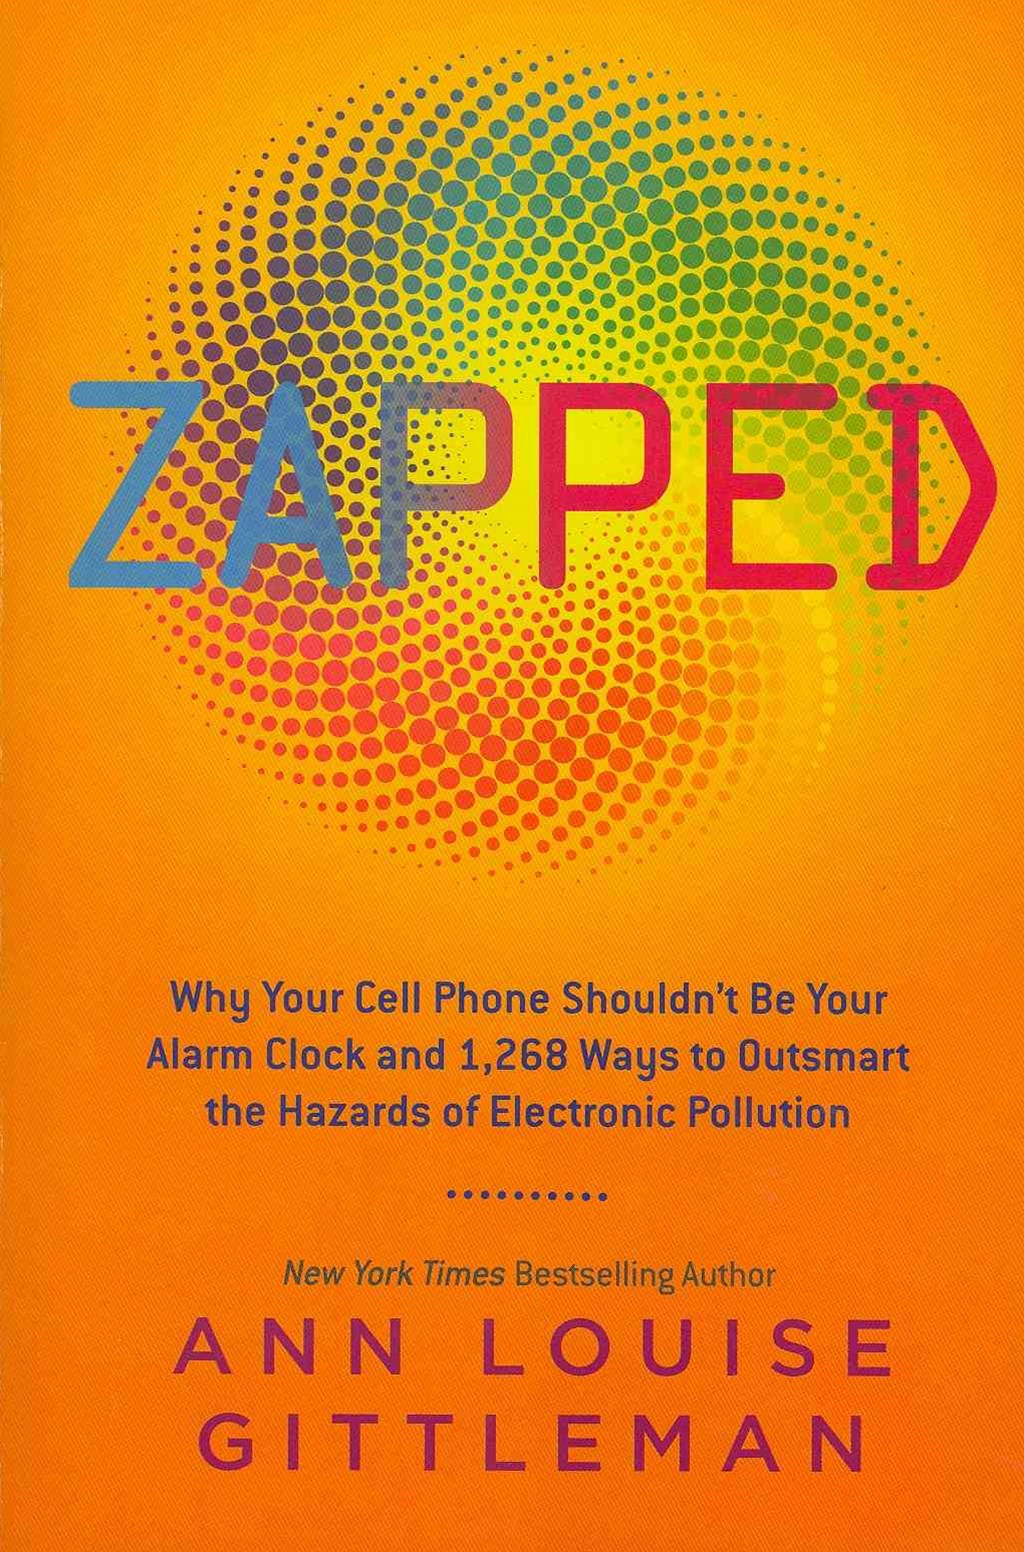 Zapped: Why Your Cell Phone Shouldn't Be Your Alarm Clock and 1,268 Waysto Outsmart the Hazards of Electronic Pollution